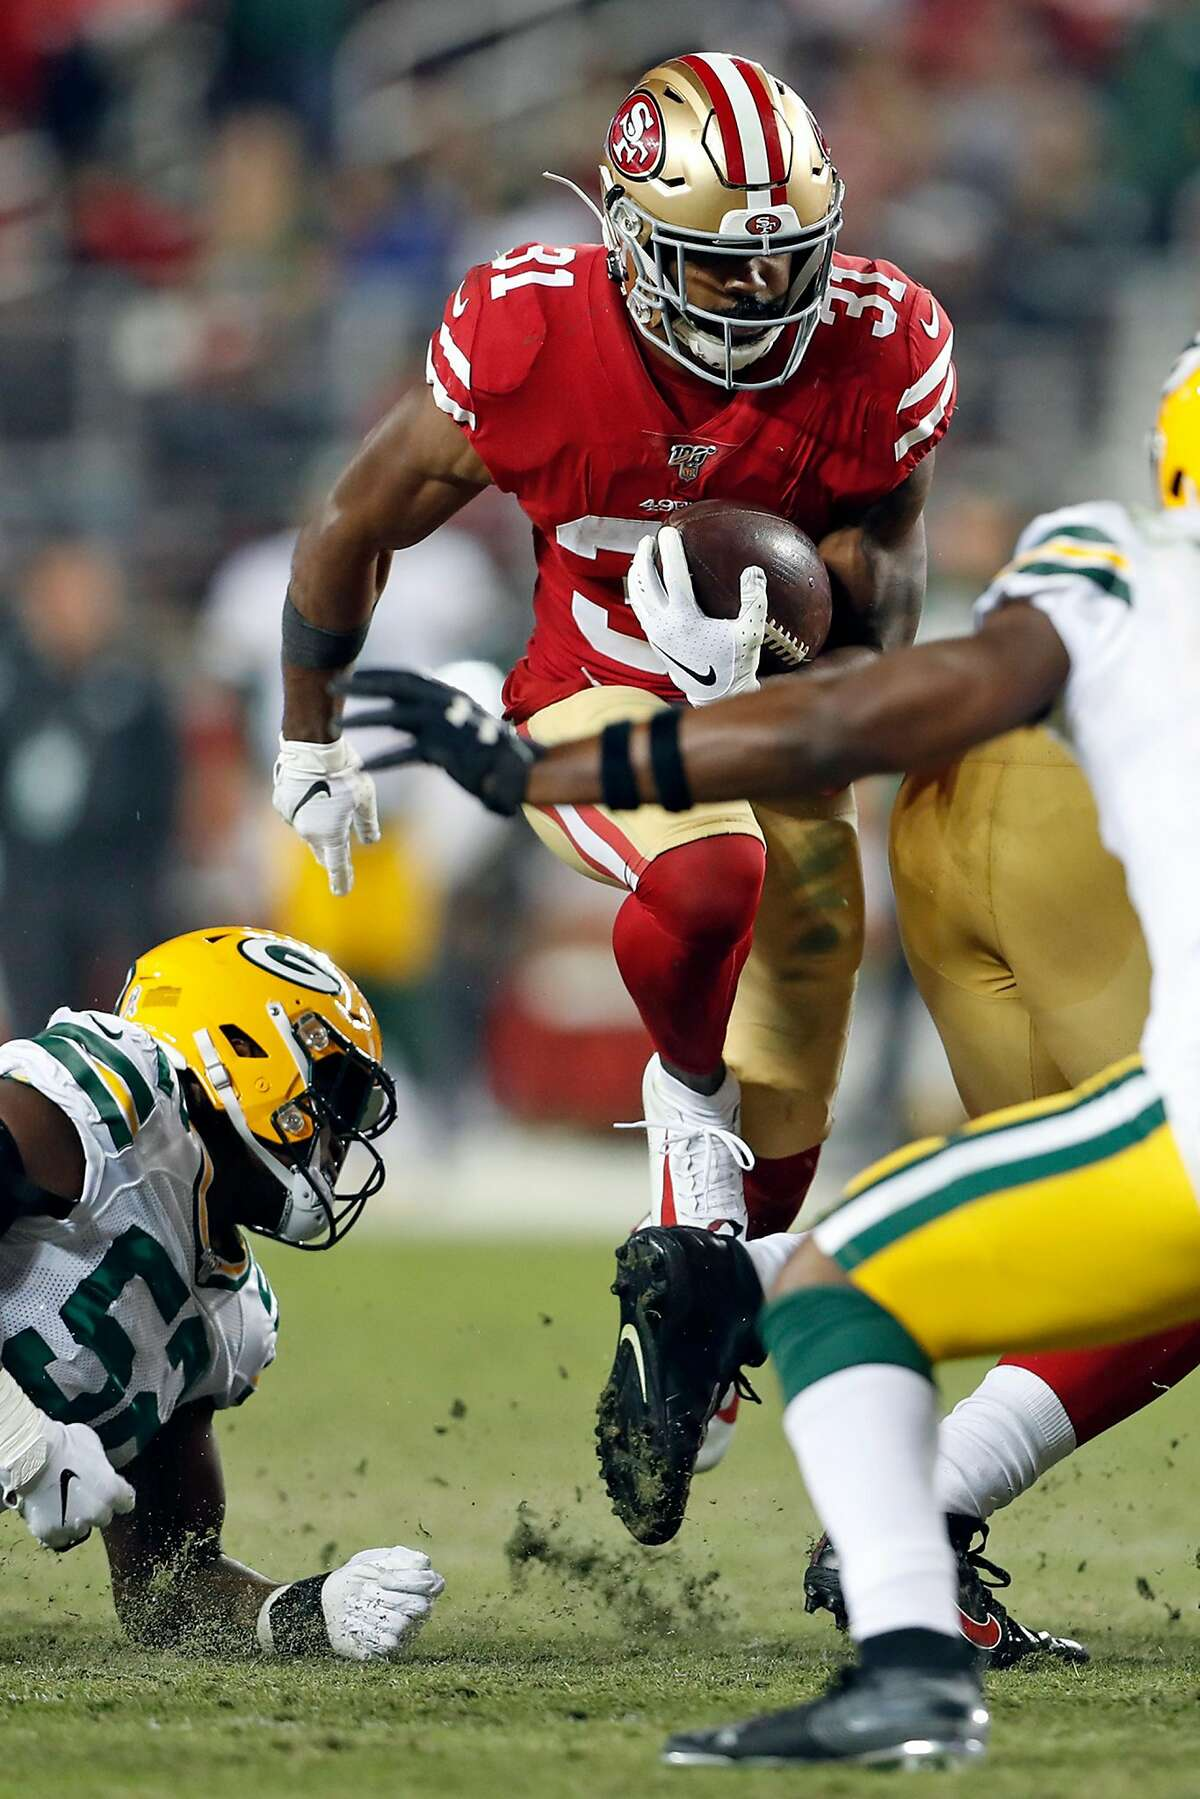 San Francisco 49ers' Raheem Mostert rushes for a 4th quarter touchdown during Niners' 37-8 win over Green Bay Packers in NFL game at Levi's Stadium in Santa Clara, Calif., on Sunday, November 24, 2019.